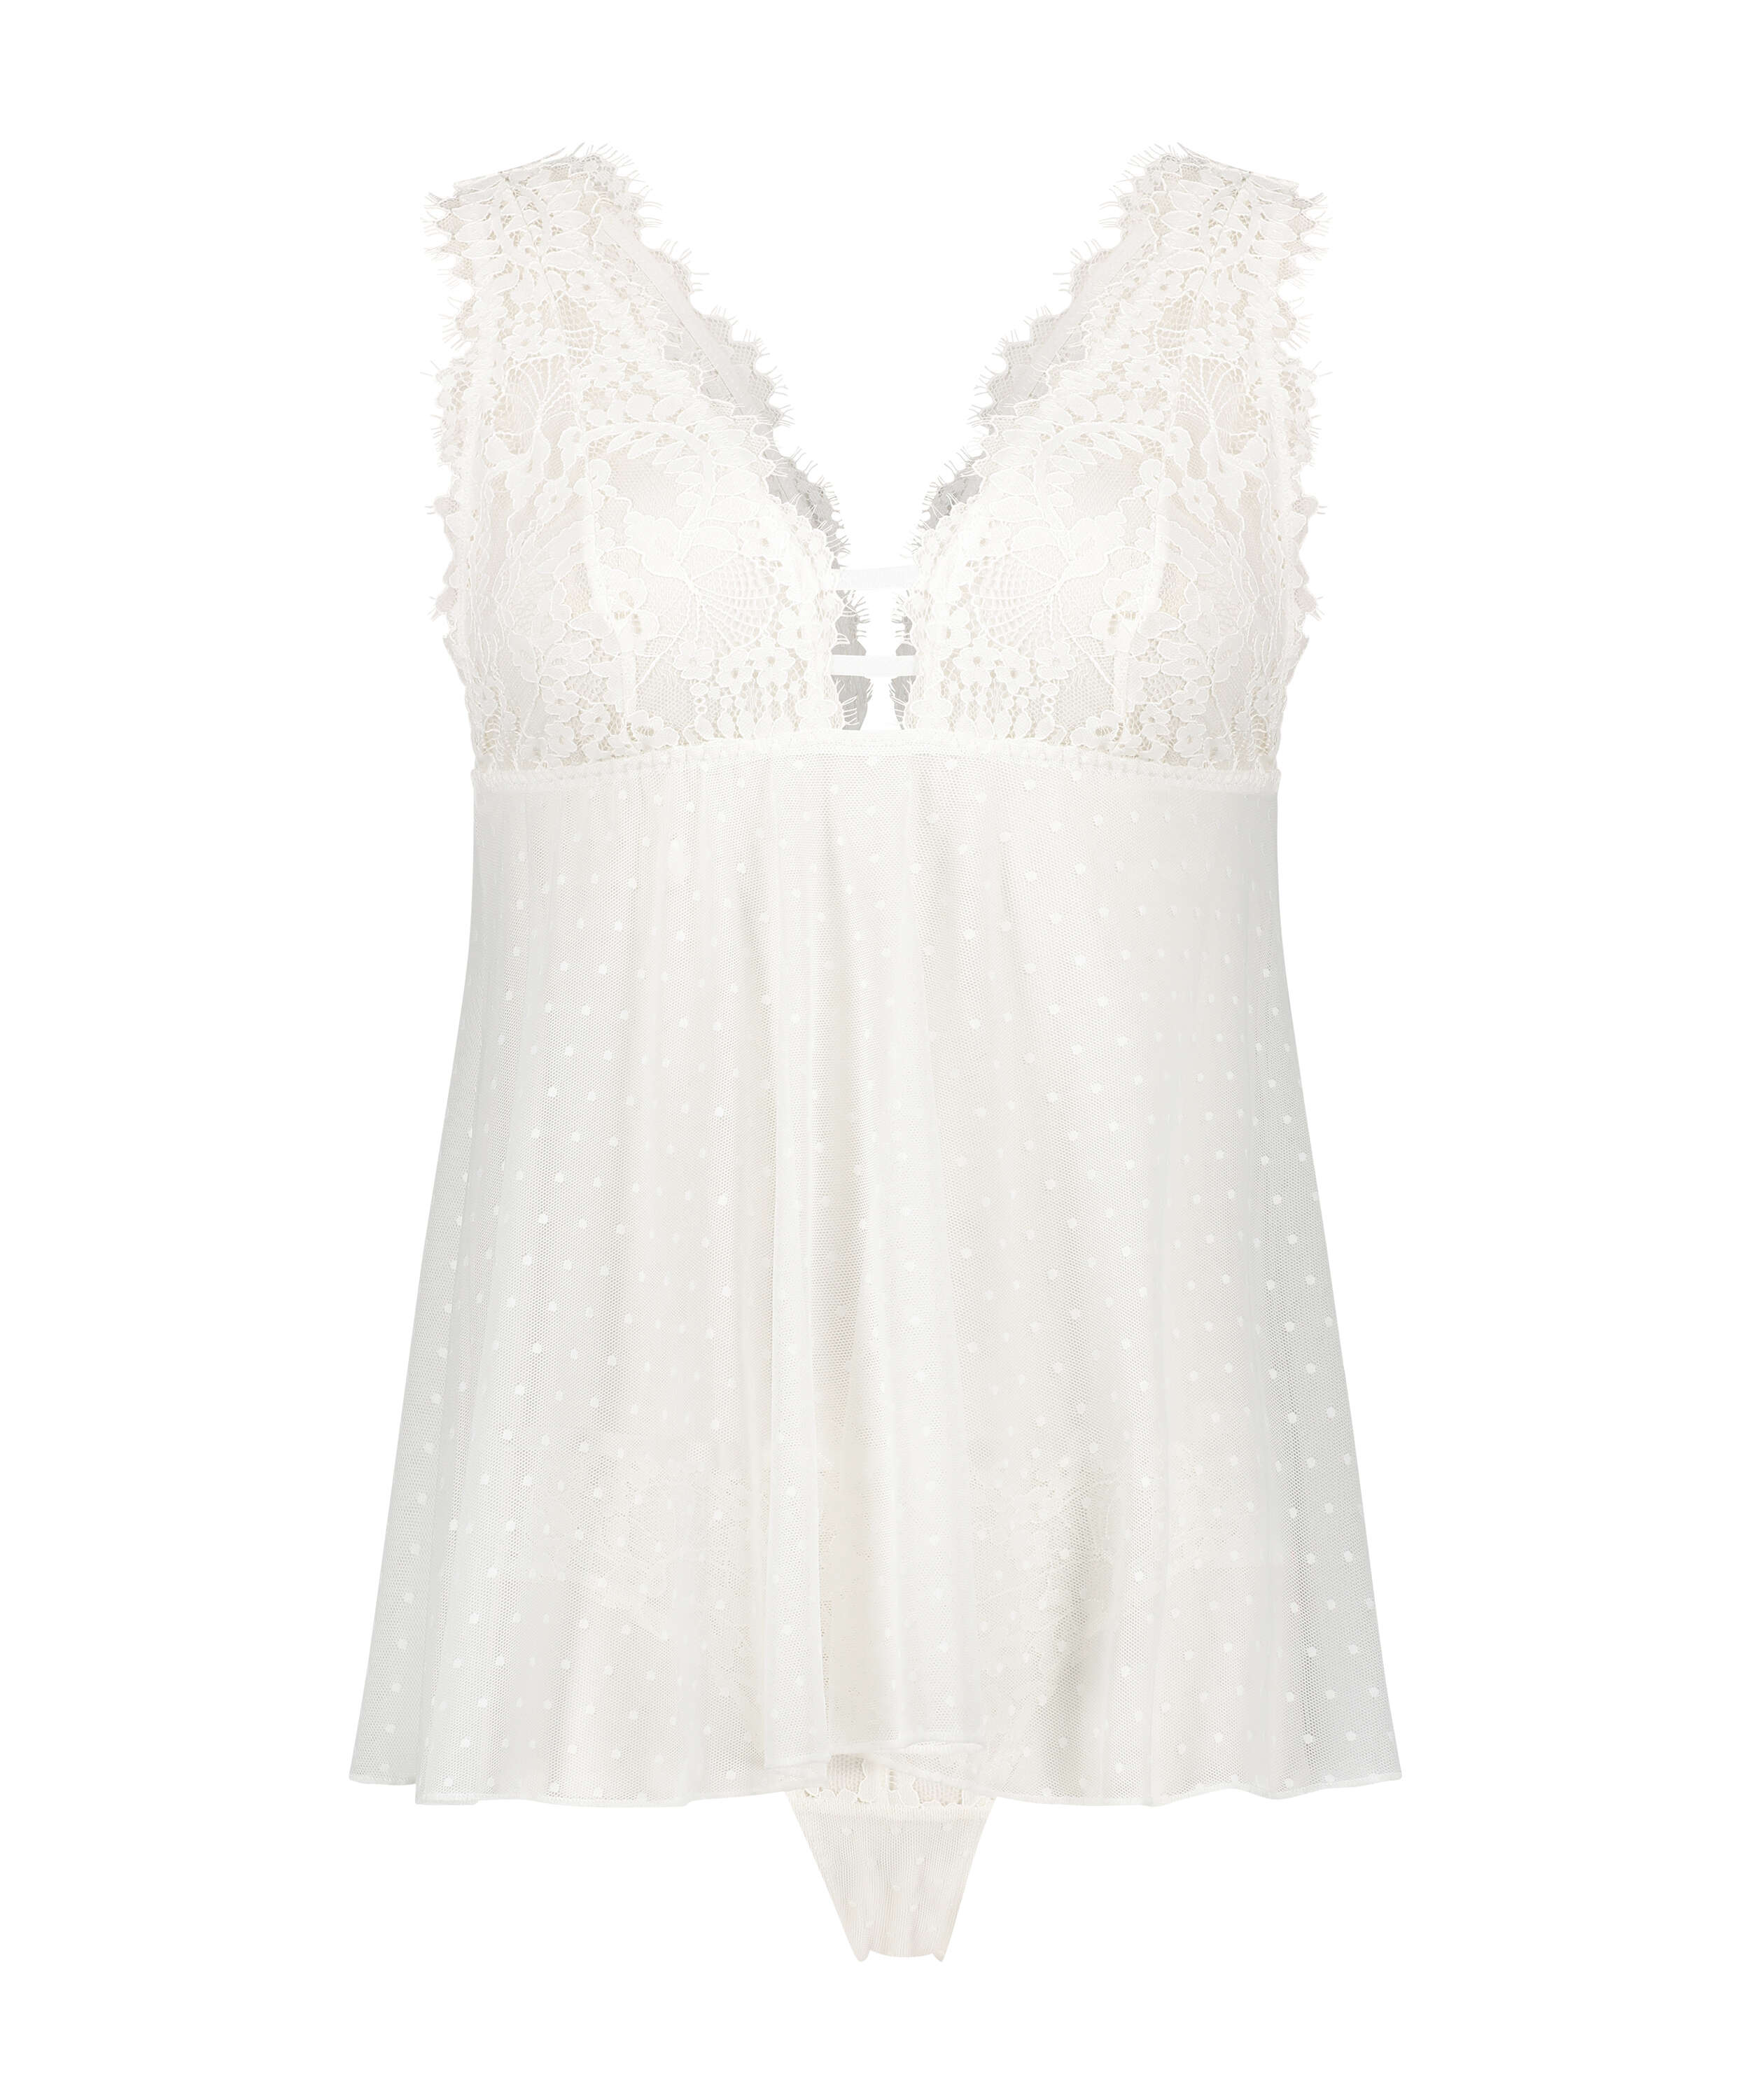 Camiset Tabatha, White, main